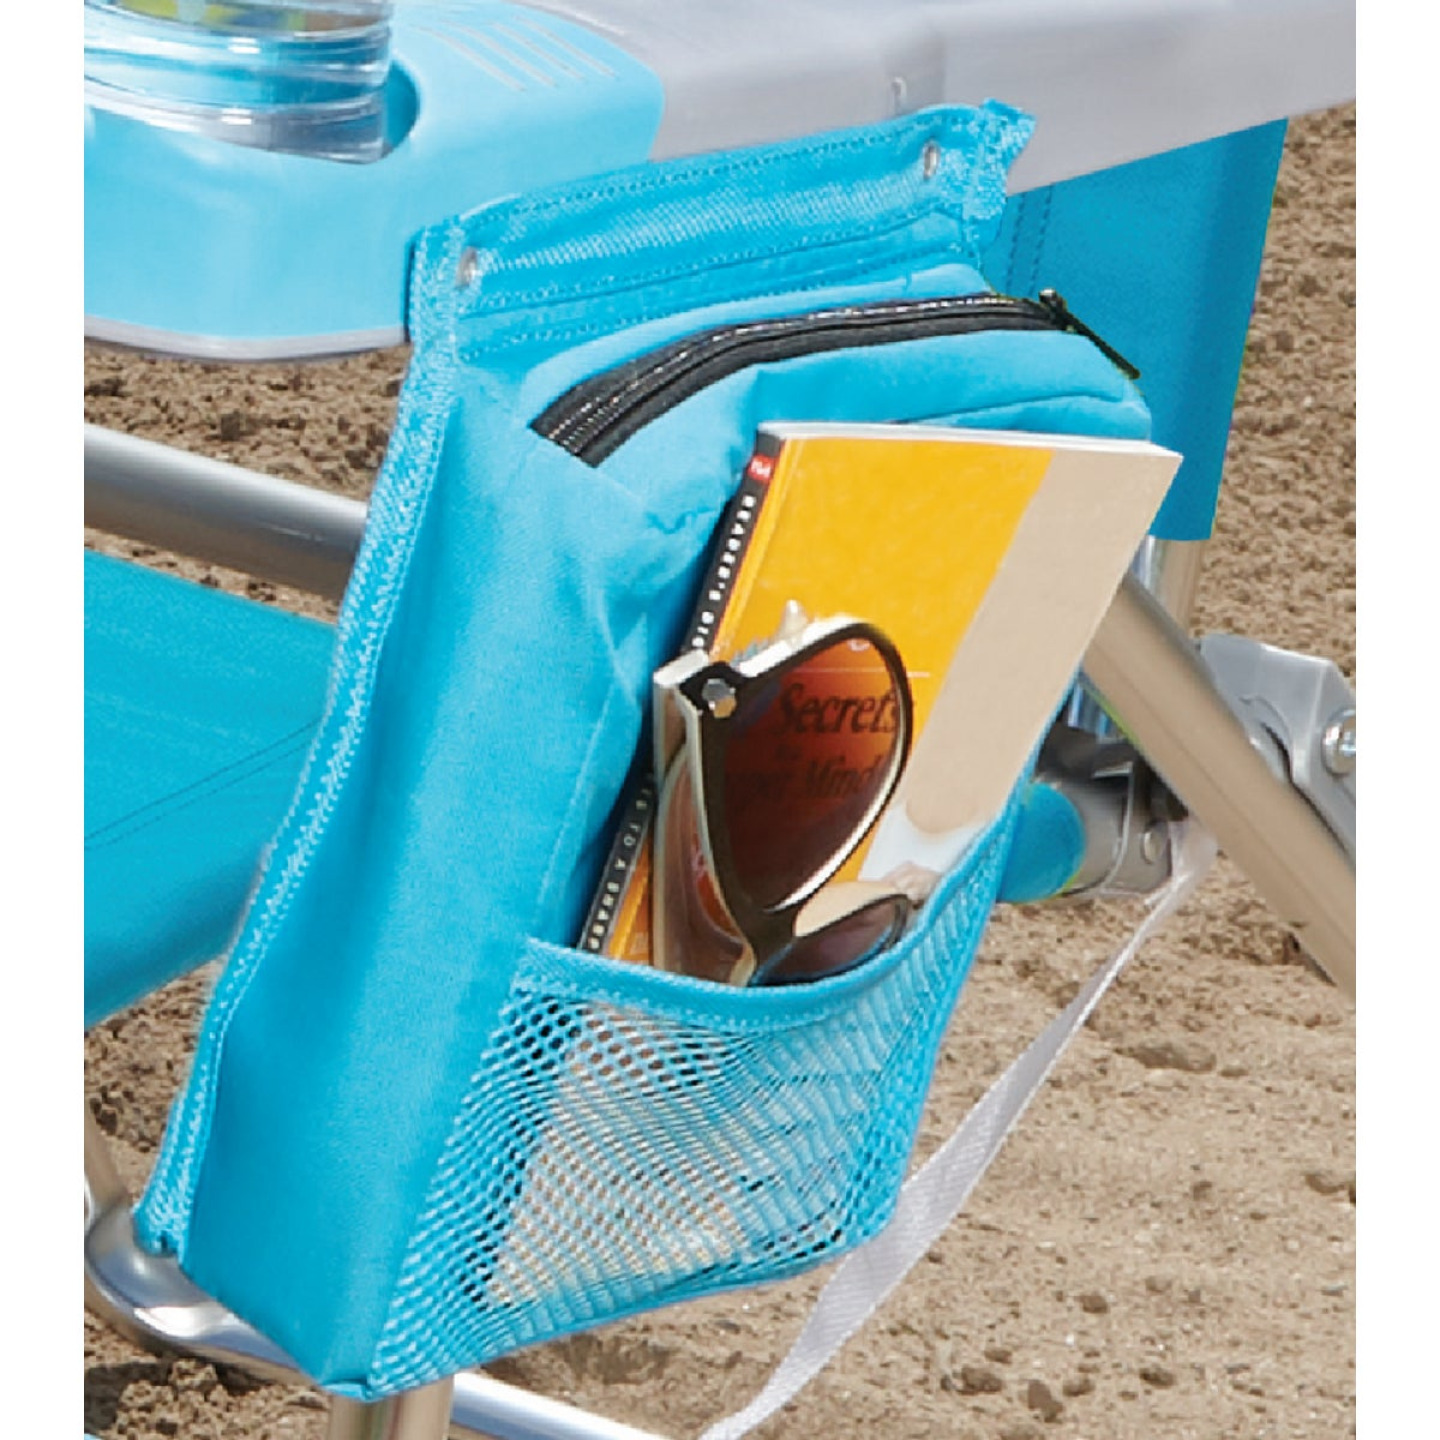 Rio Brands 4-Position Aluminum Folding Beach Chair with Cooler Image 2